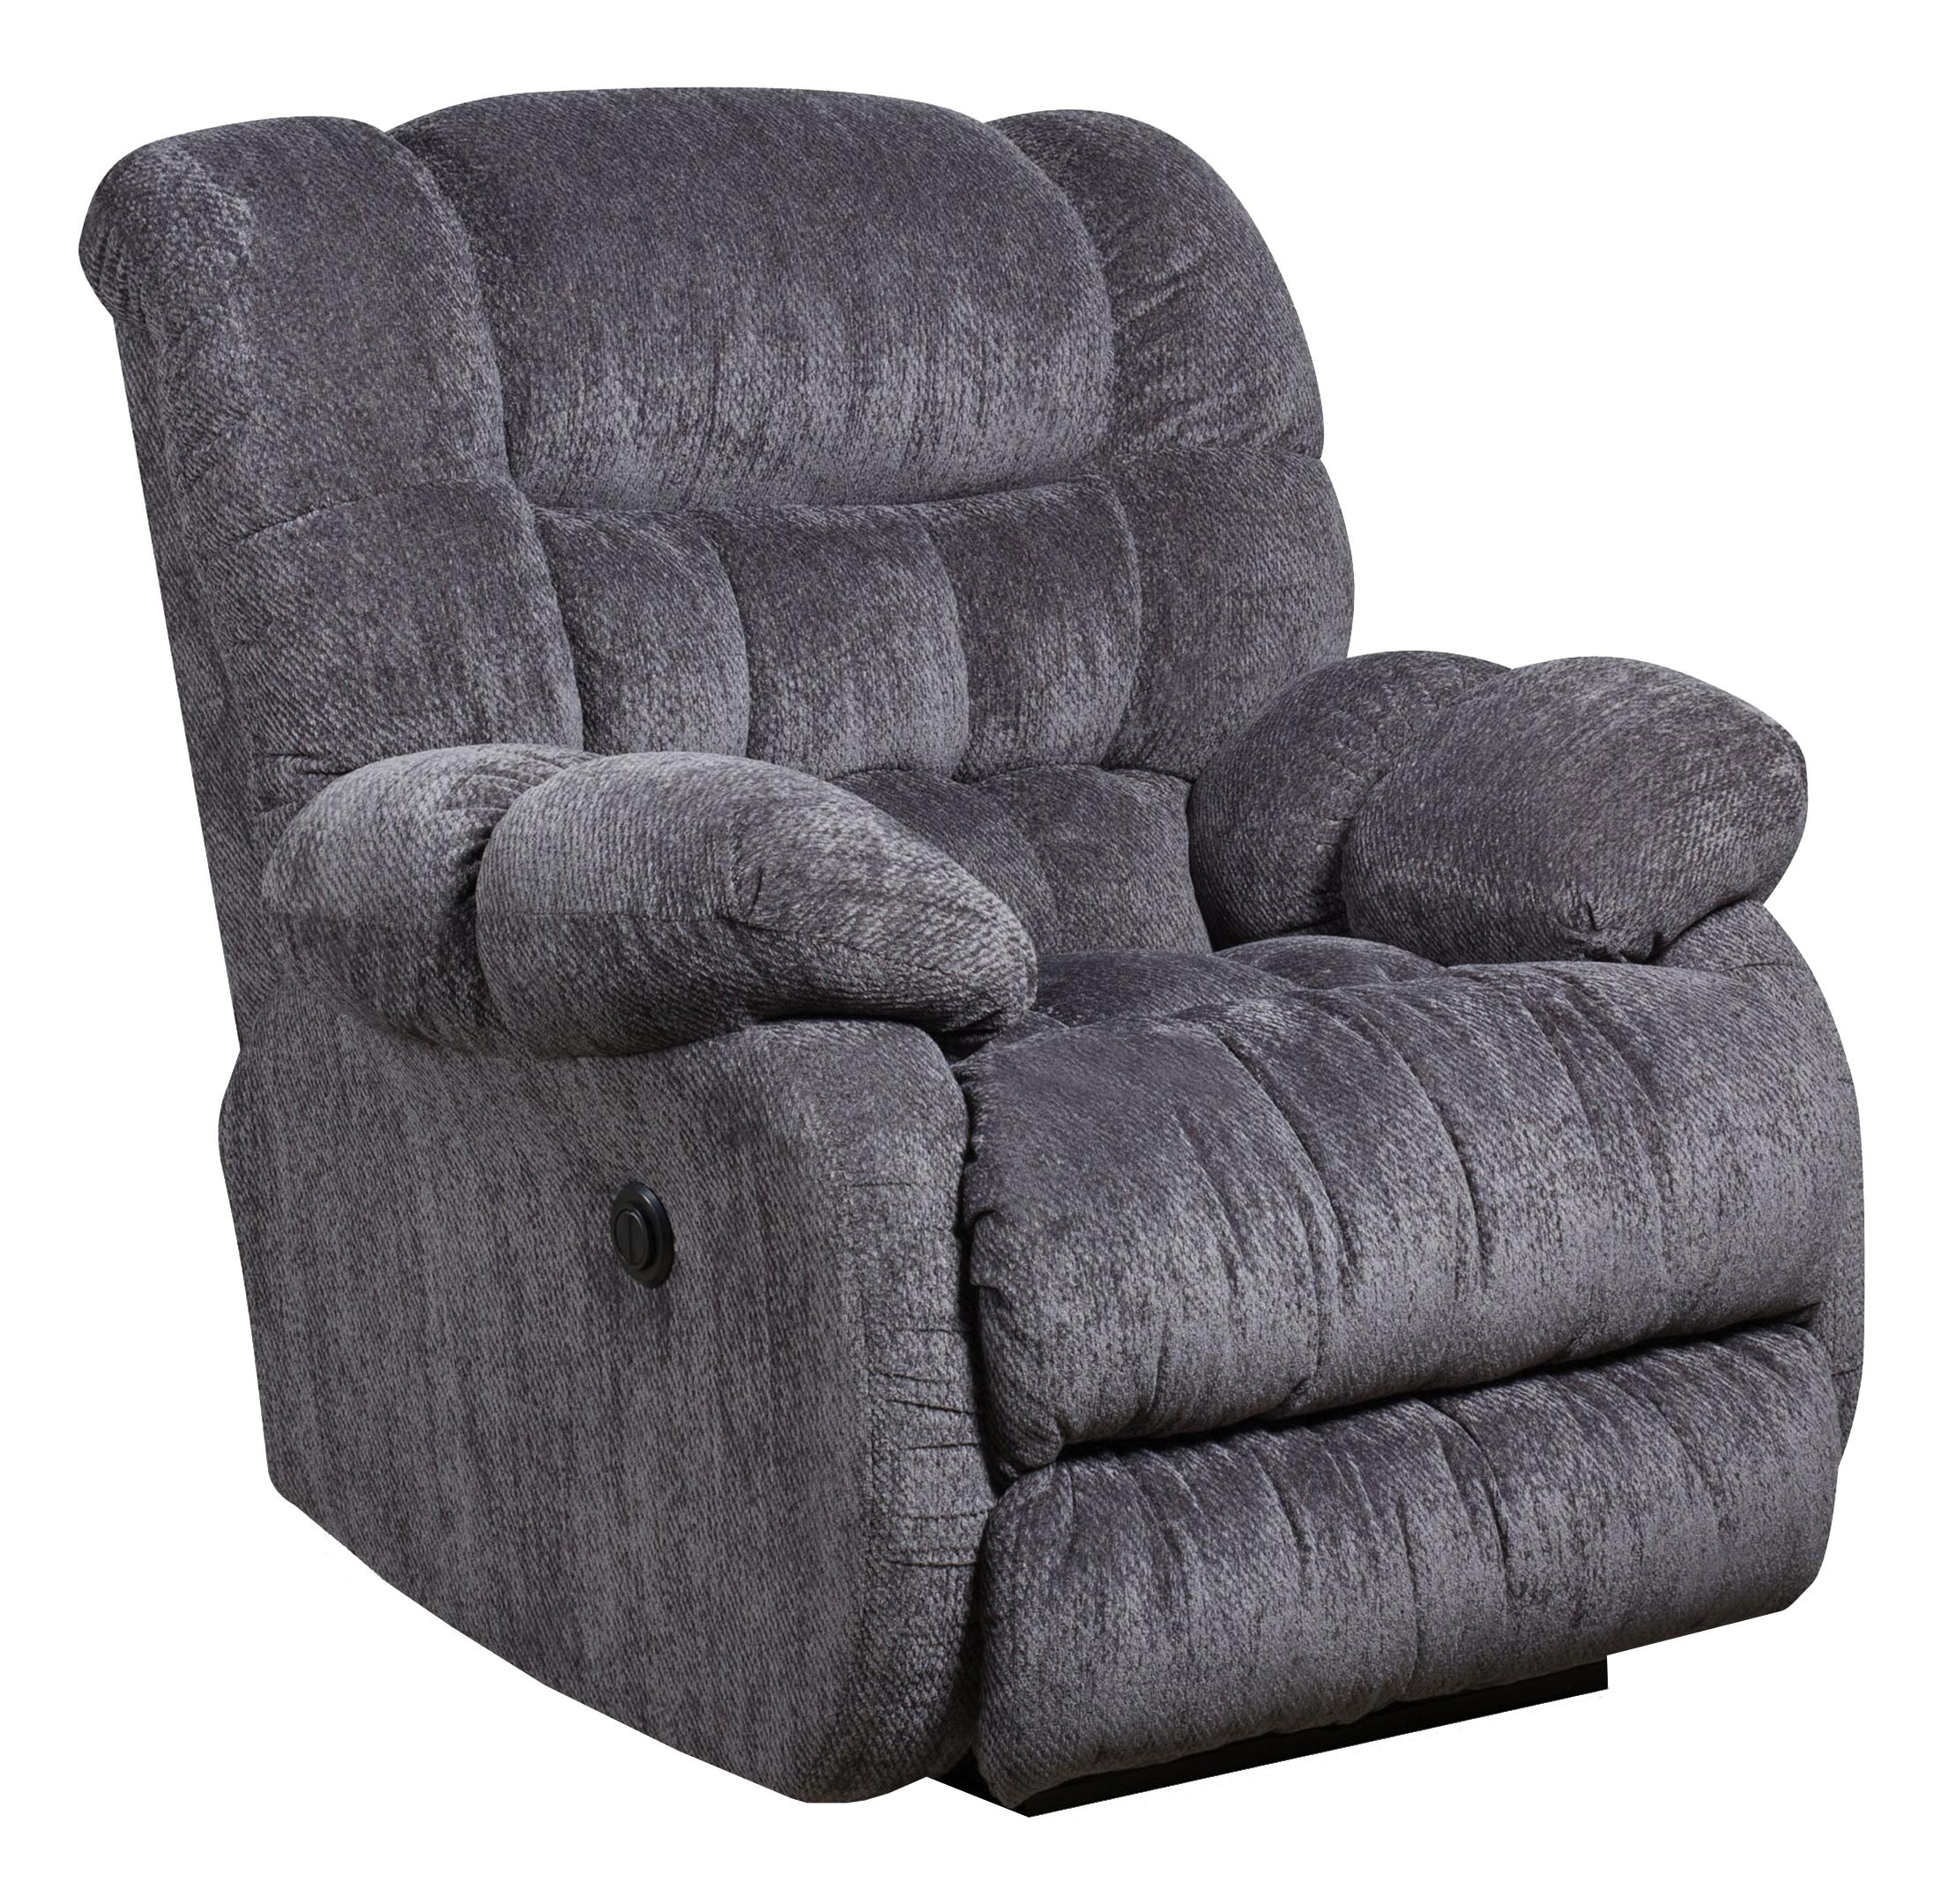 Fantastic 9460 Rocker Recliner Bralicious Painted Fabric Chair Ideas Braliciousco